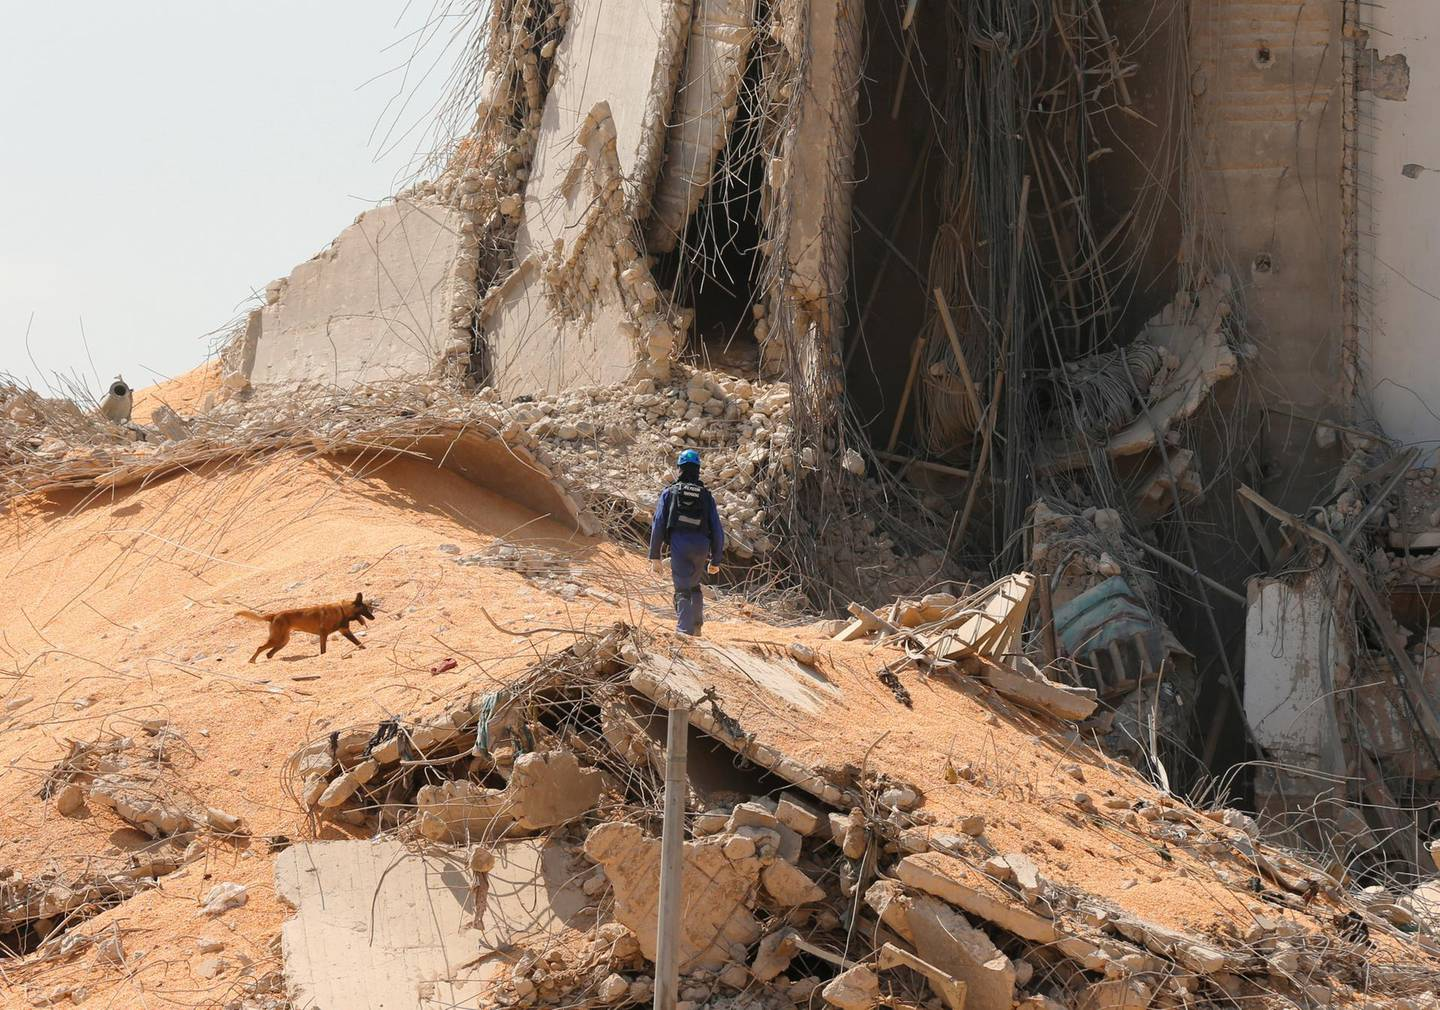 French rescue team member and a search and rescue dog walk near the damaged grain silo at the site of Tuesday's blast, at Beirut's port area, Lebanon, August 7, 2020. REUTERS/Mohamed Azakir